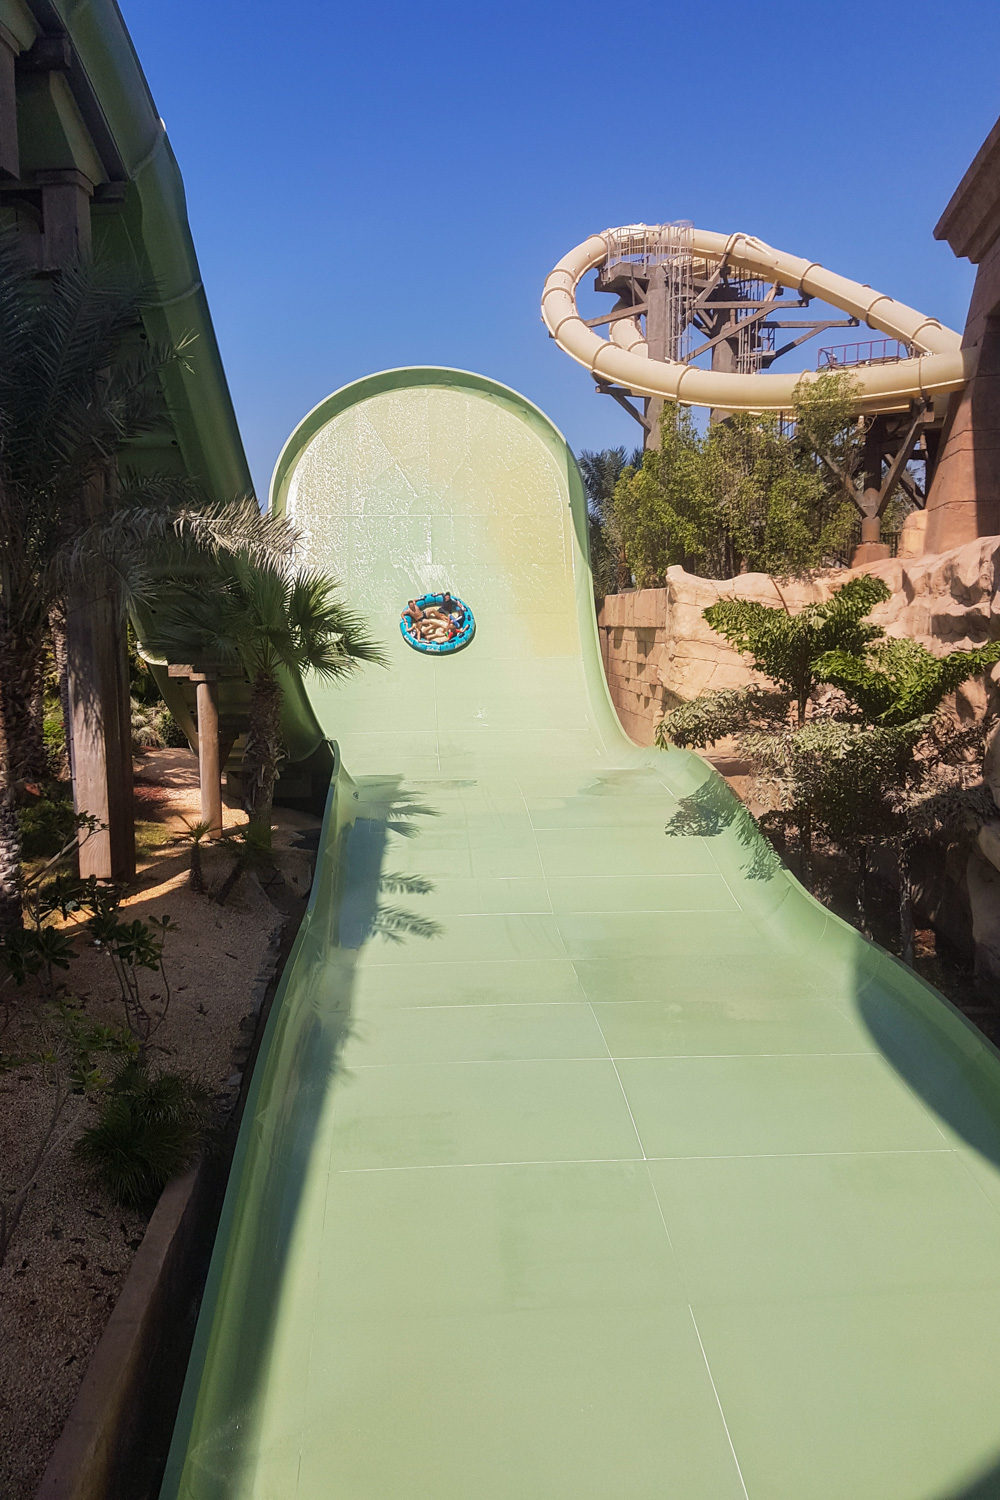 Zoomerango Ride at Aquaventure Waterpark, Atlantis the Palm, Dubai